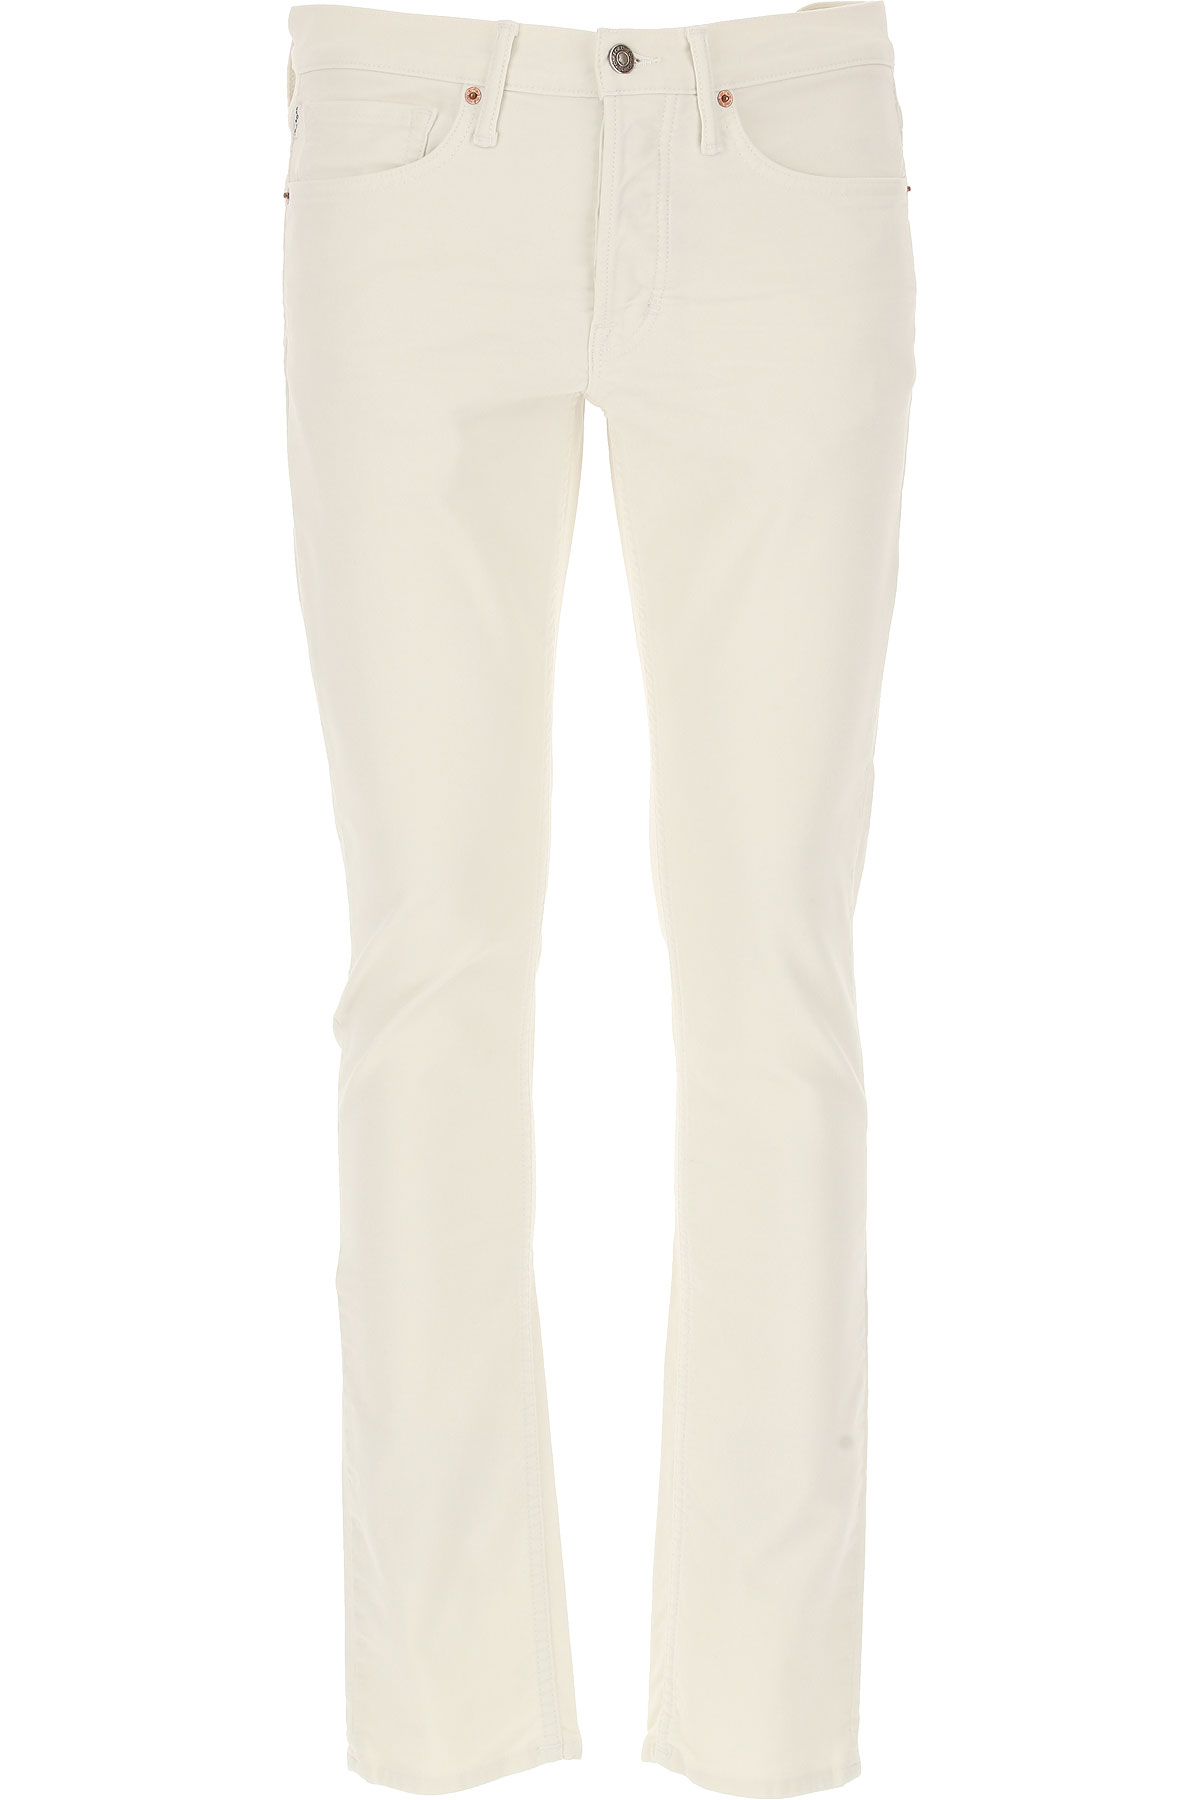 Image of Tom Ford Jeans, White, Cotton, 2017, 30 32 33 34 36